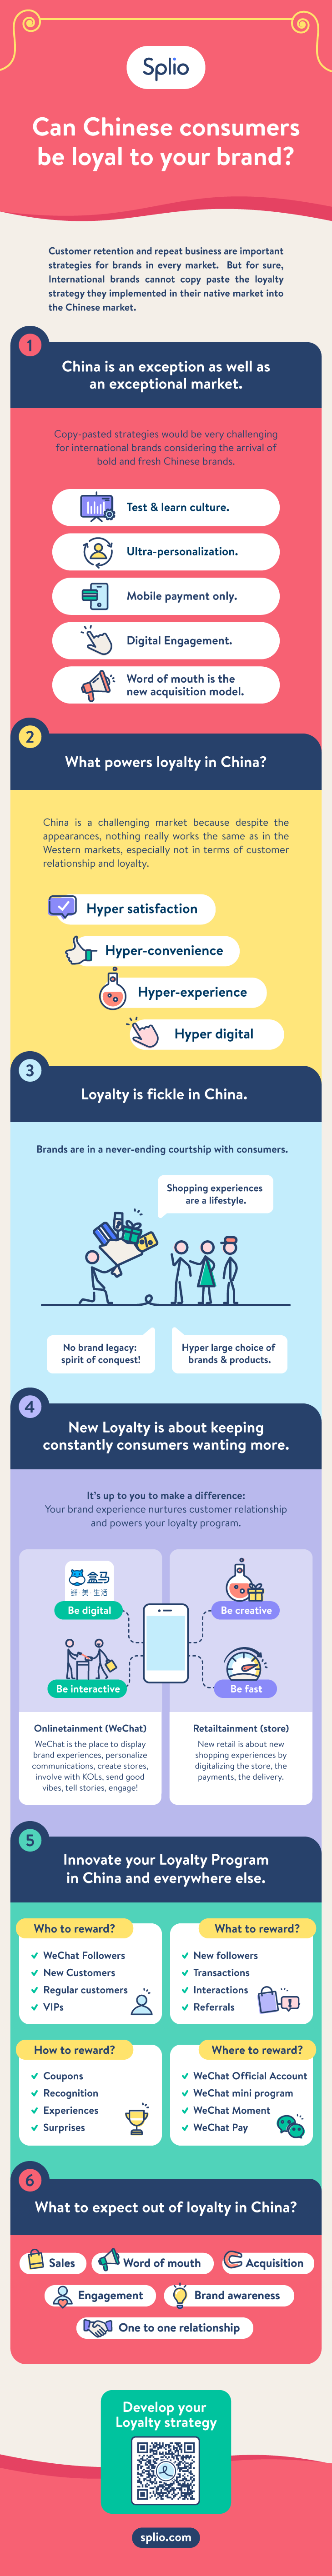 EN_can-chinese-customer-loyal-to-your-brand